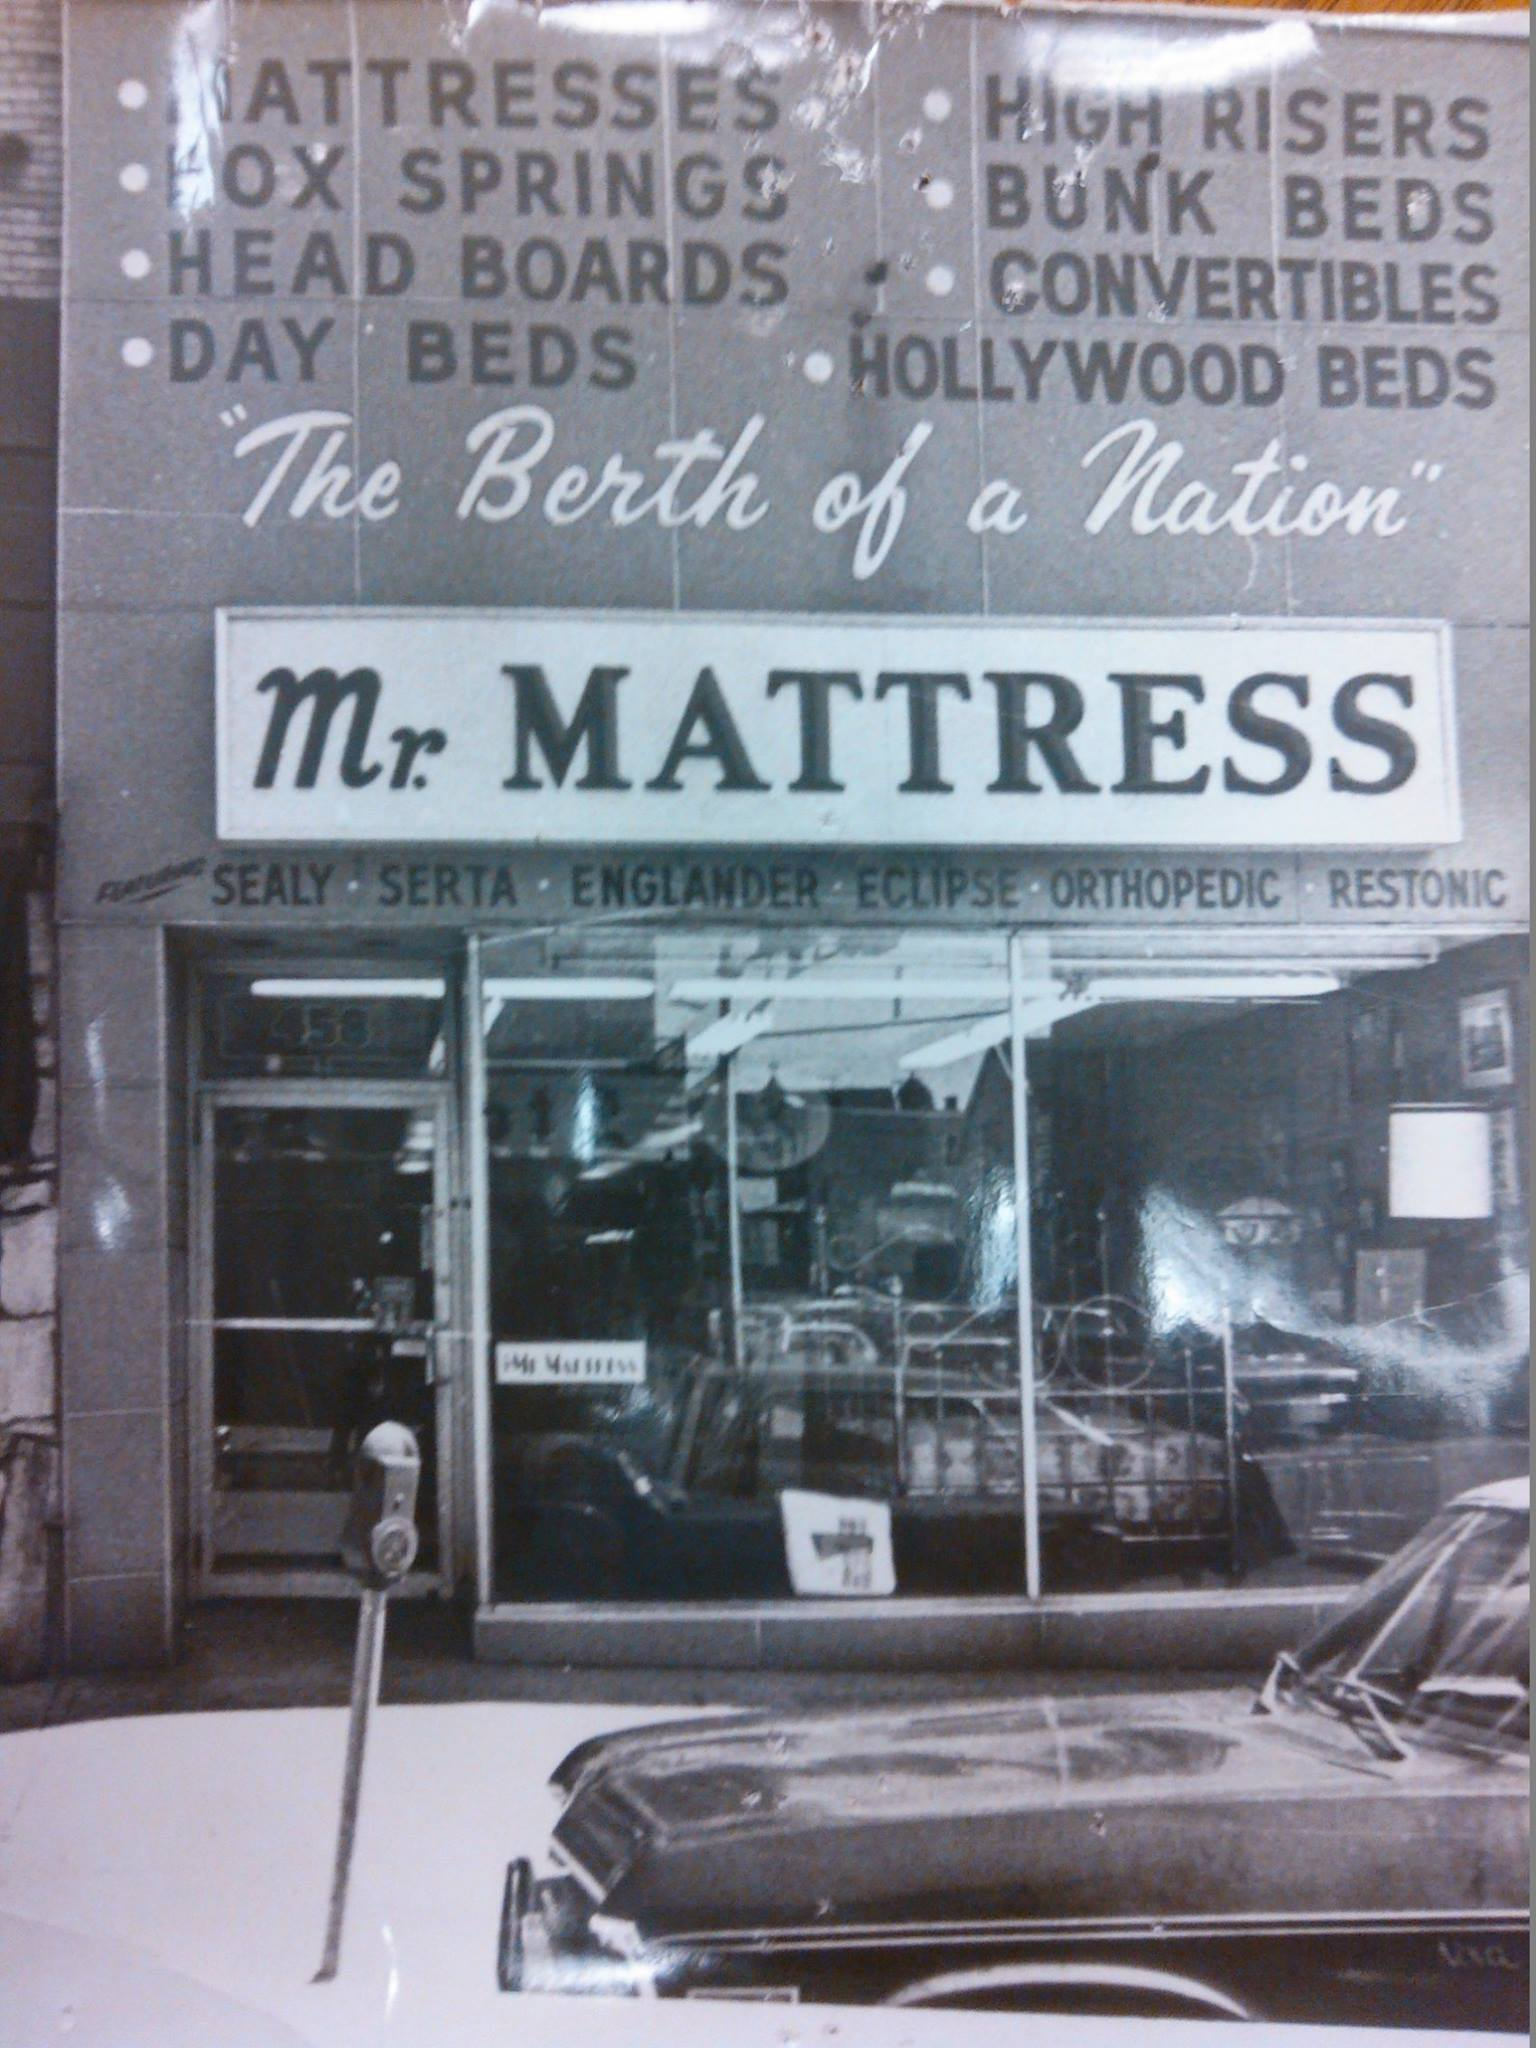 Mr. Mattress Bedding & Dinettes | Made in America | United States |